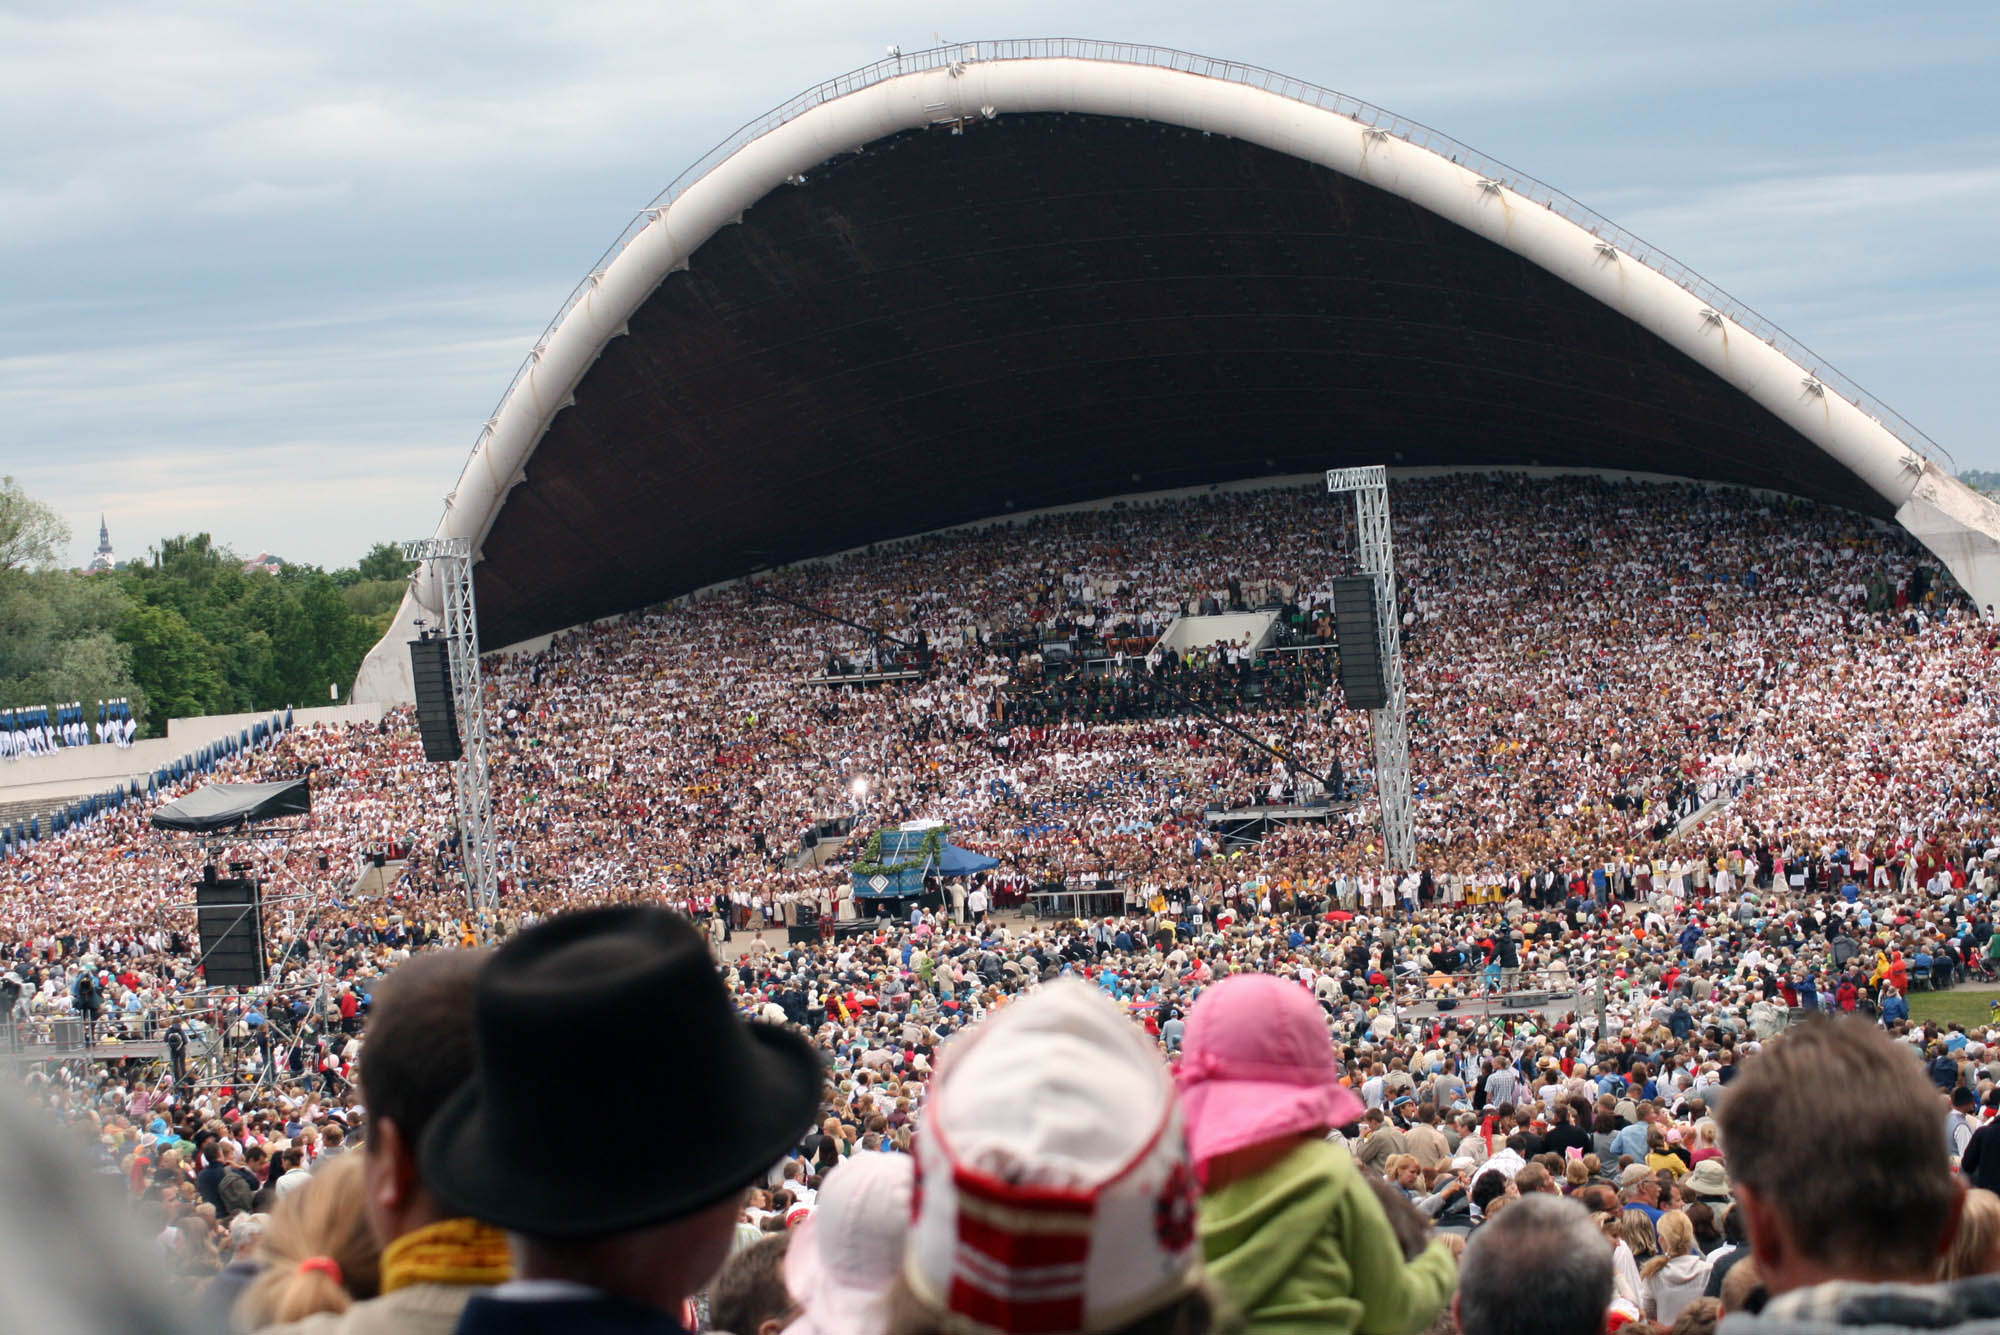 File:Tallinna song festival.jpg  Wikimedia Commons